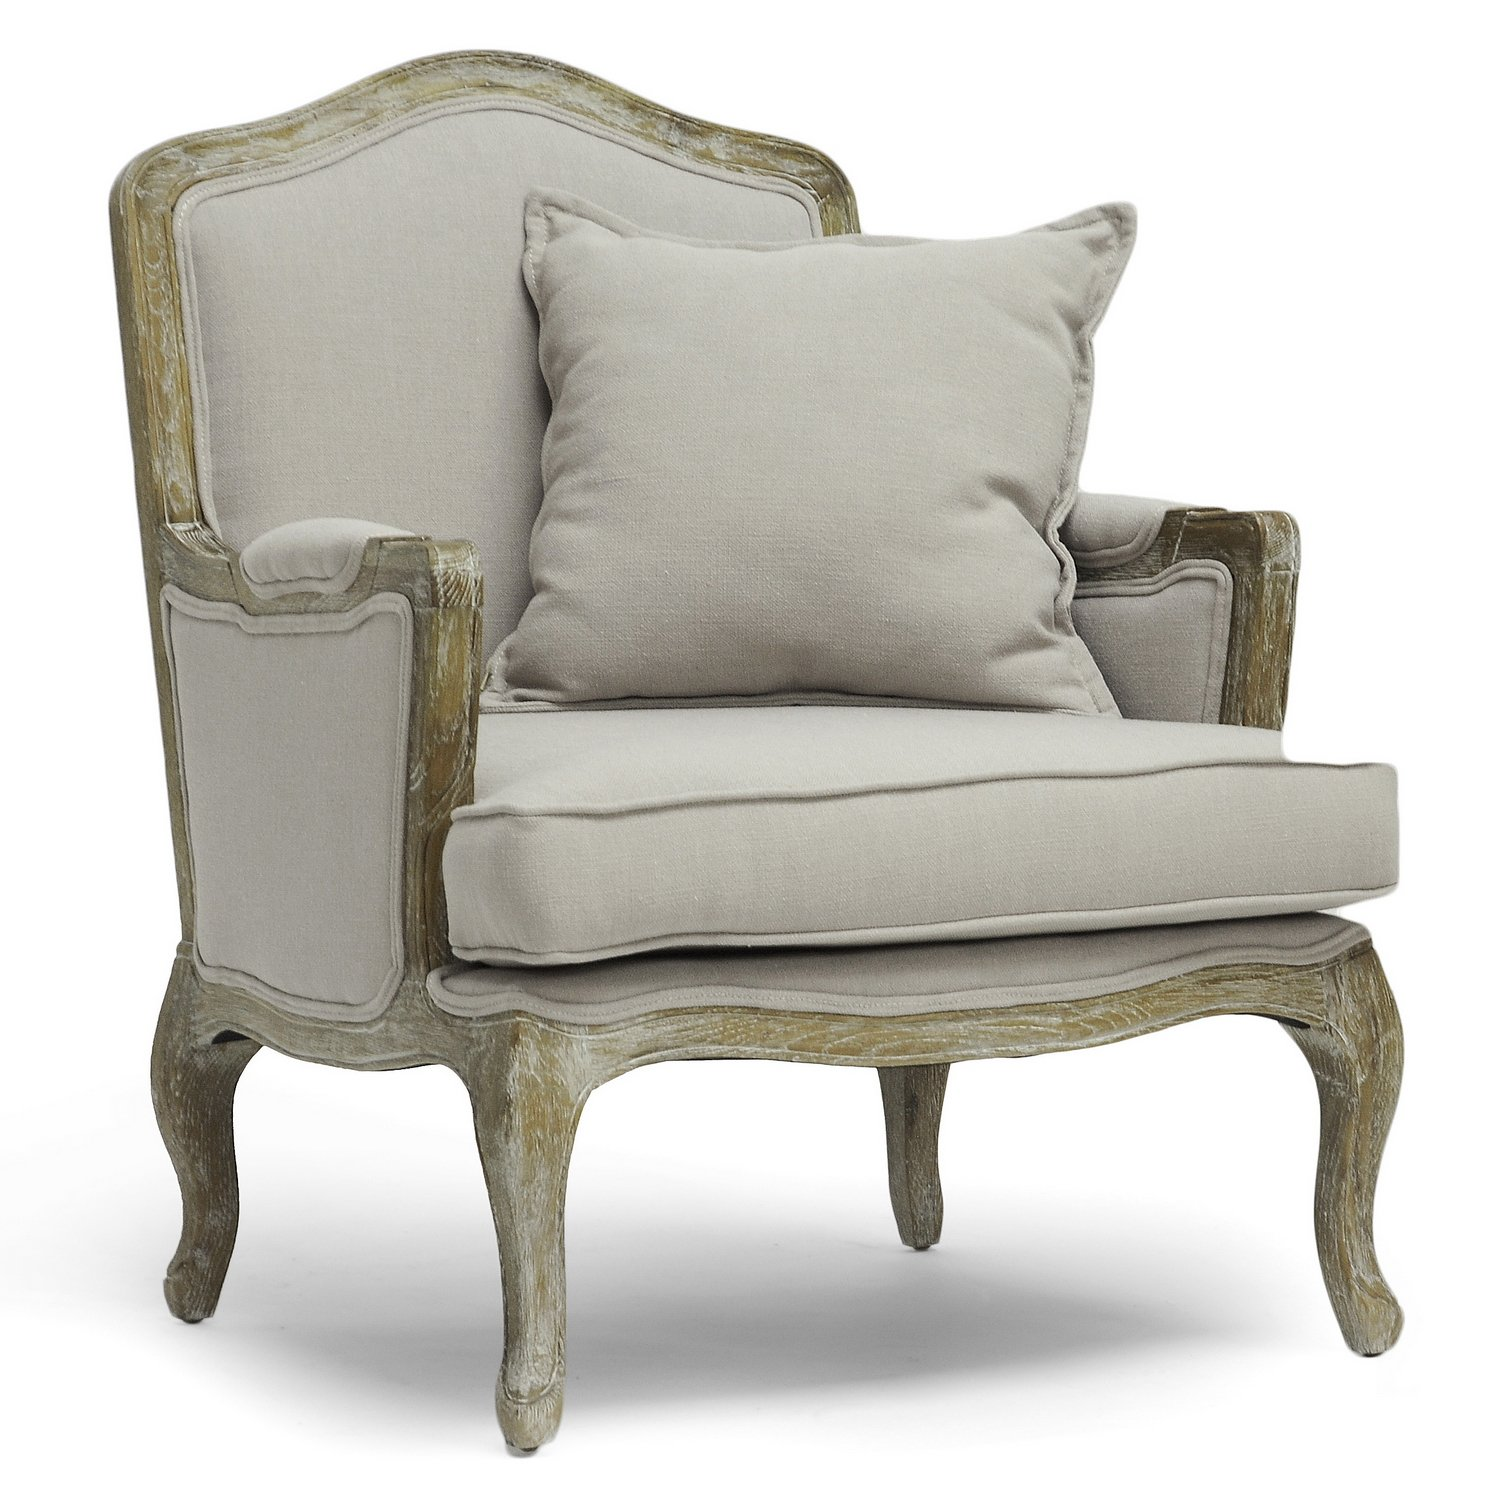 chairs pages gry accent garden productdetails product home buy image chair bedroom titus price furniture